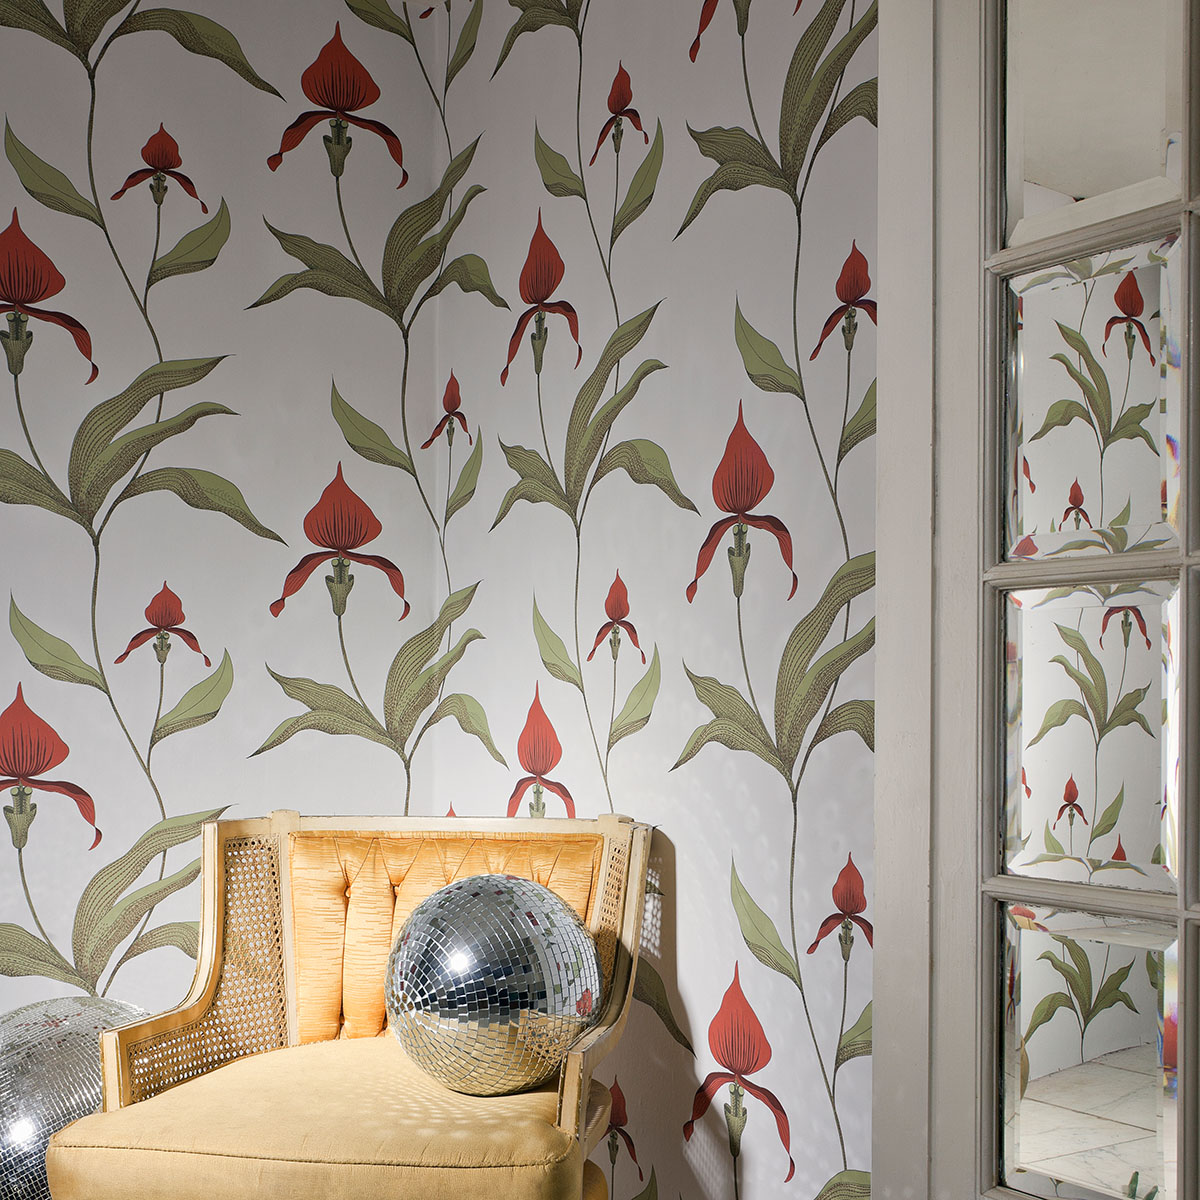 Festive Inspirations Interiors and Decoration Interior Design Cole and Son Orchid